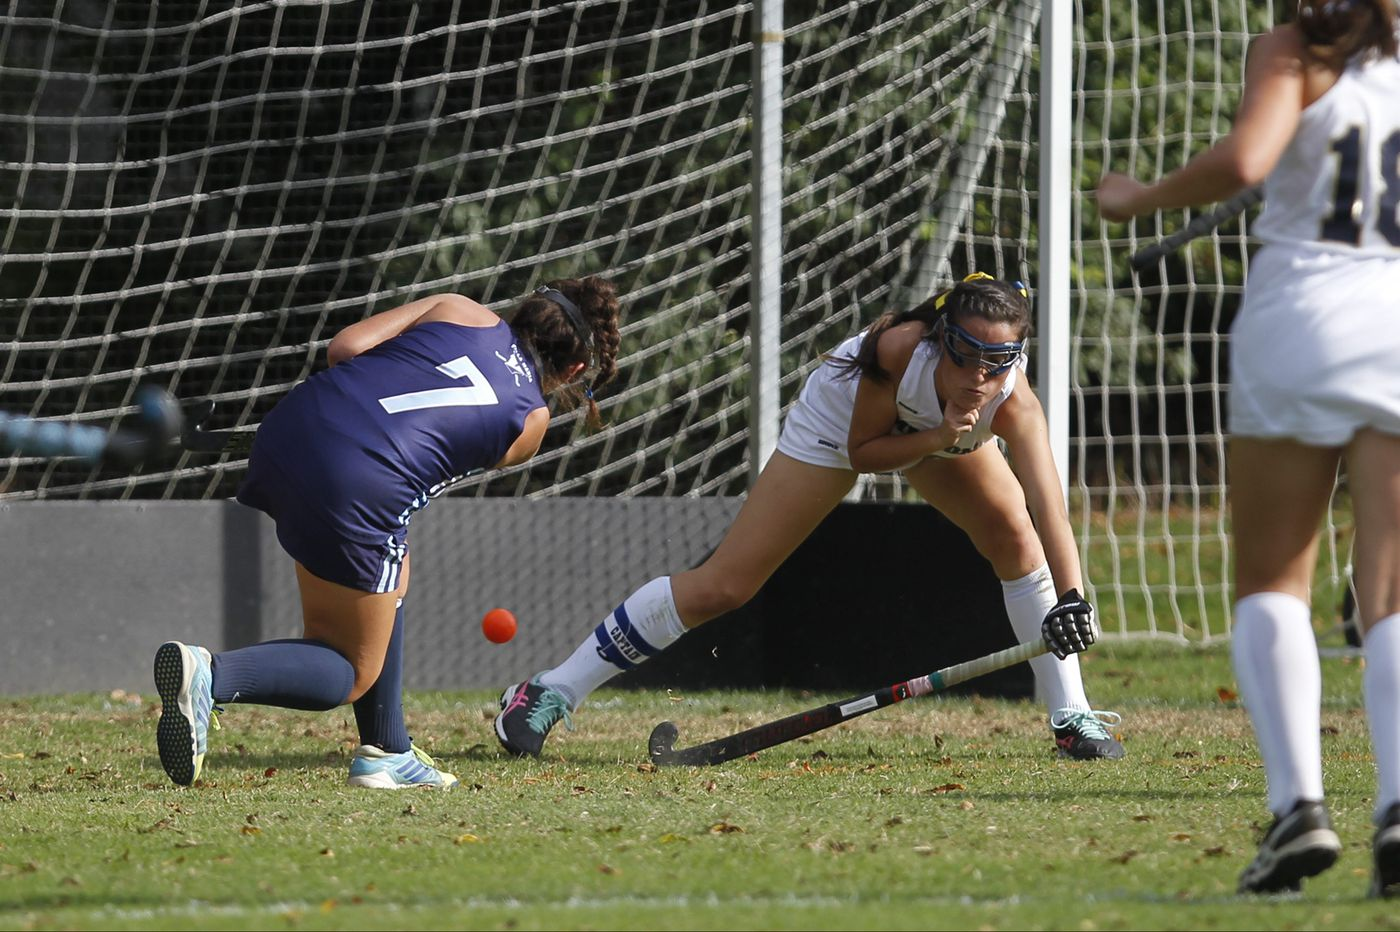 Thursday's Southeastern Pa. roundup: Miller notches another hat trick for Villa Maria